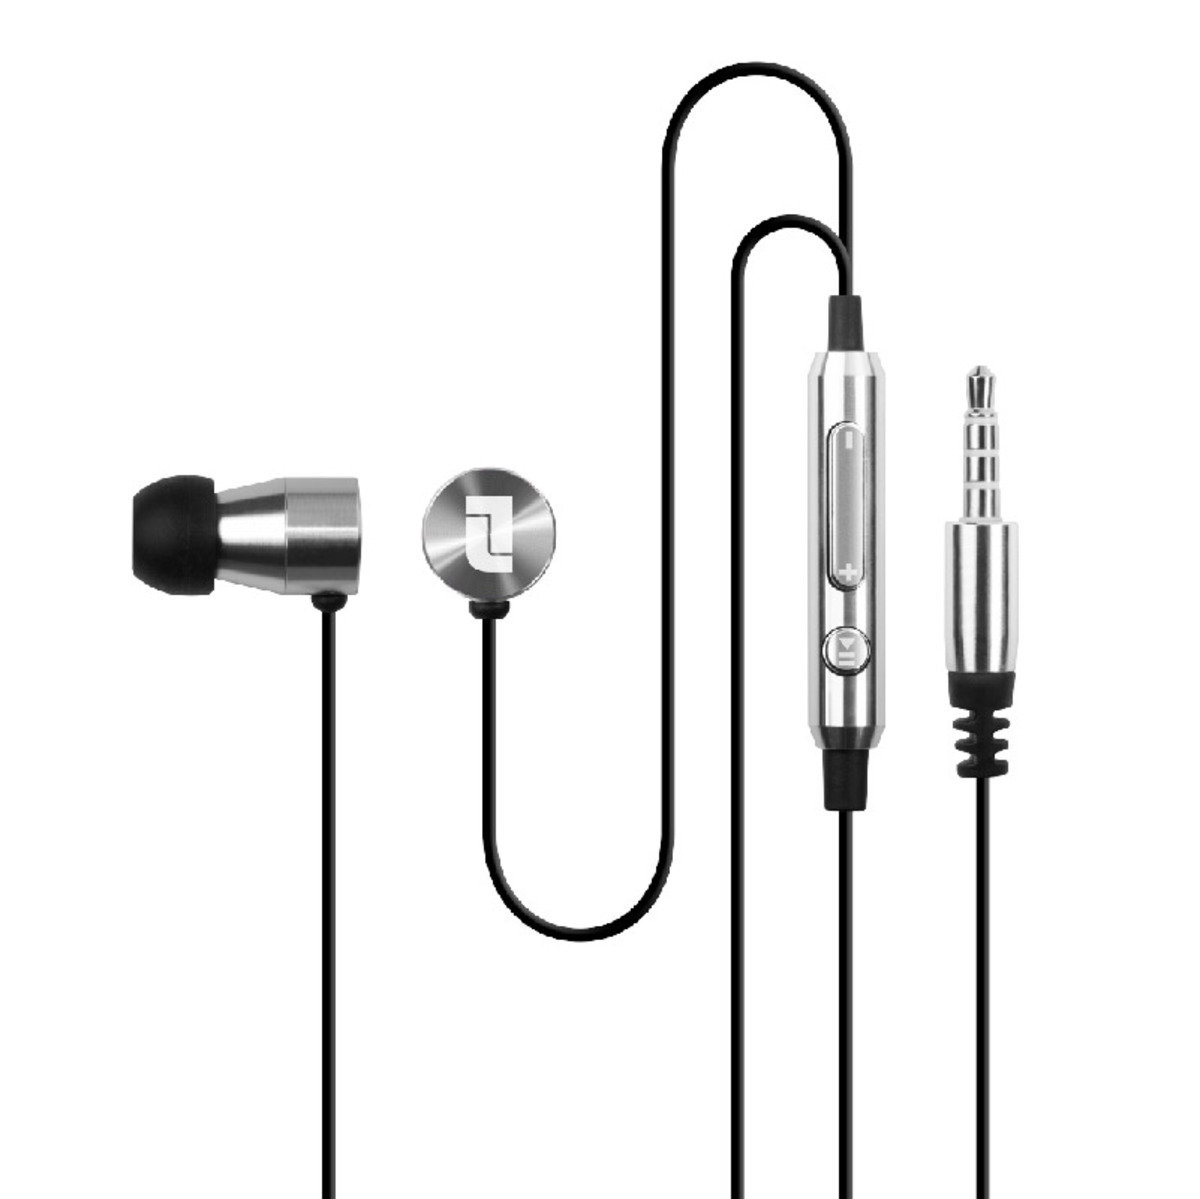 DrumBass Precision Earphones With Metallic Finished and Noise Isolation